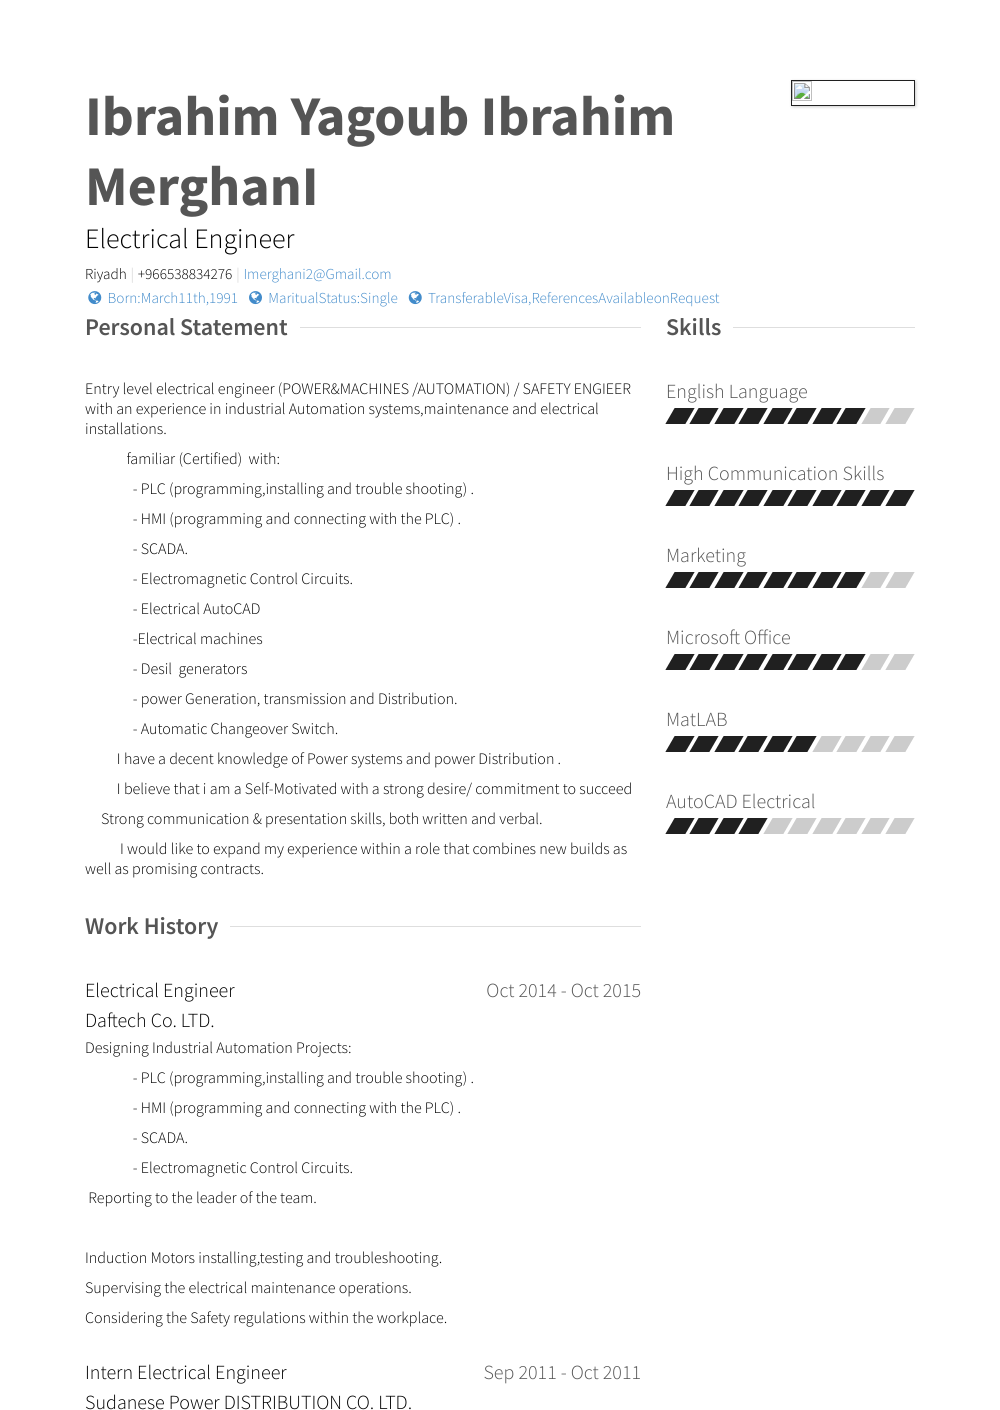 Electrical Engineer Resume Samples Templates Visualcv